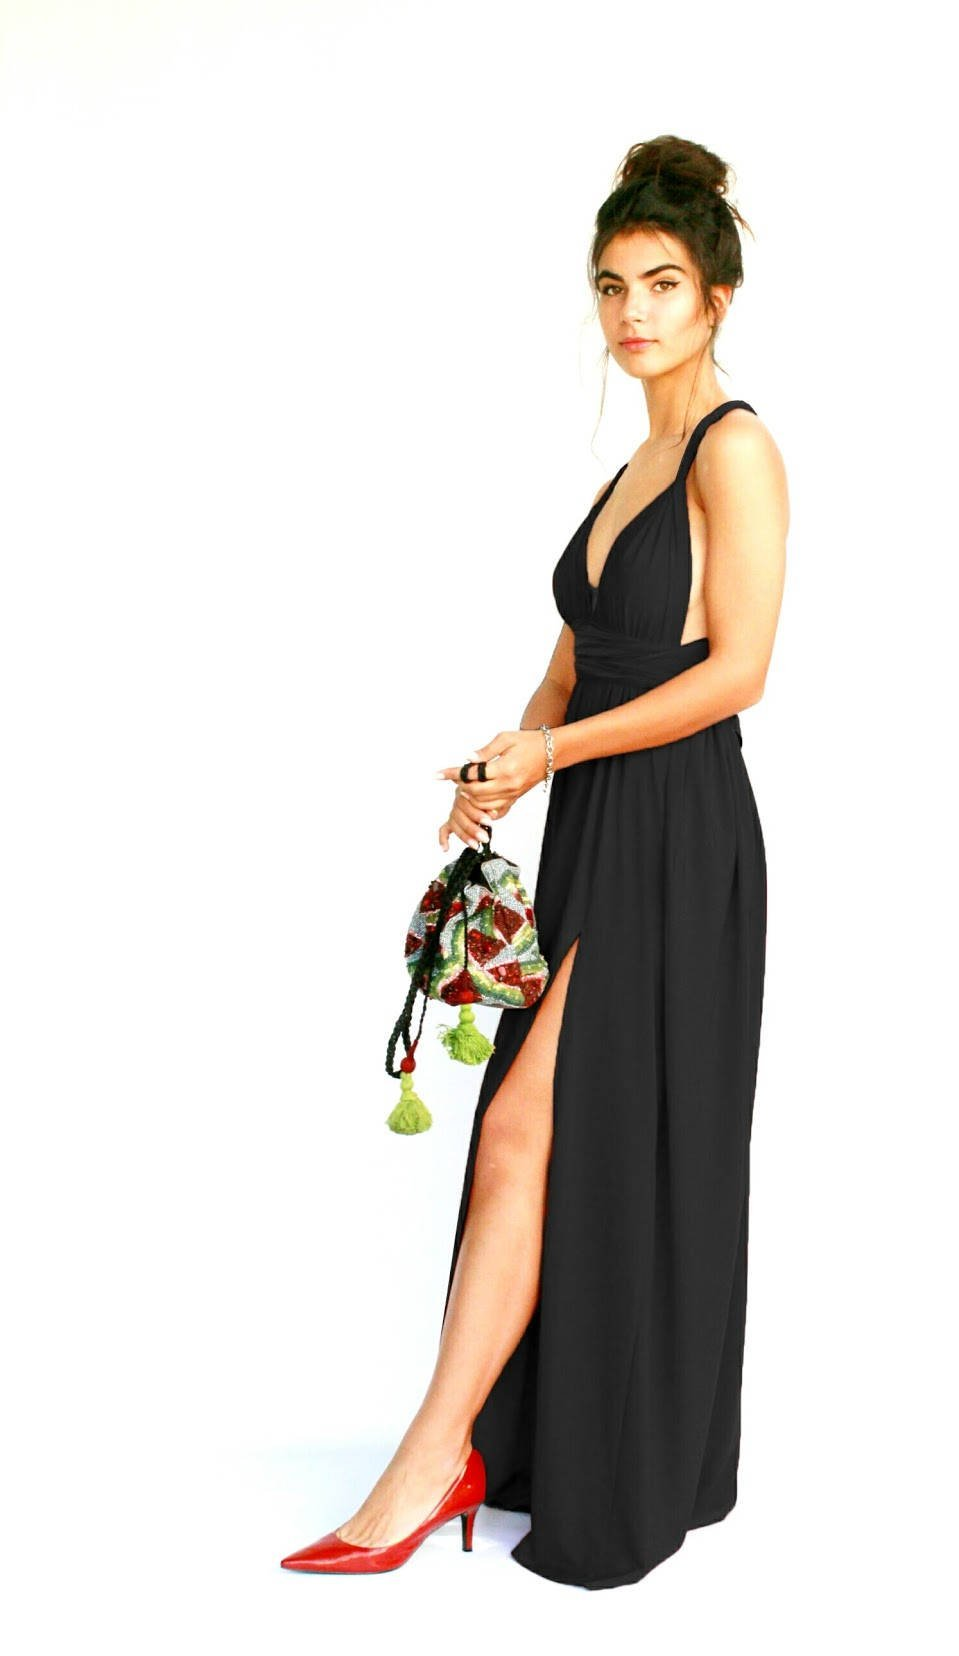 Women's Infinity Black Prom Dress, Bridesmaid Evening Dress, Maxi Long Dress for Wedding, Elegant Lycra Gown